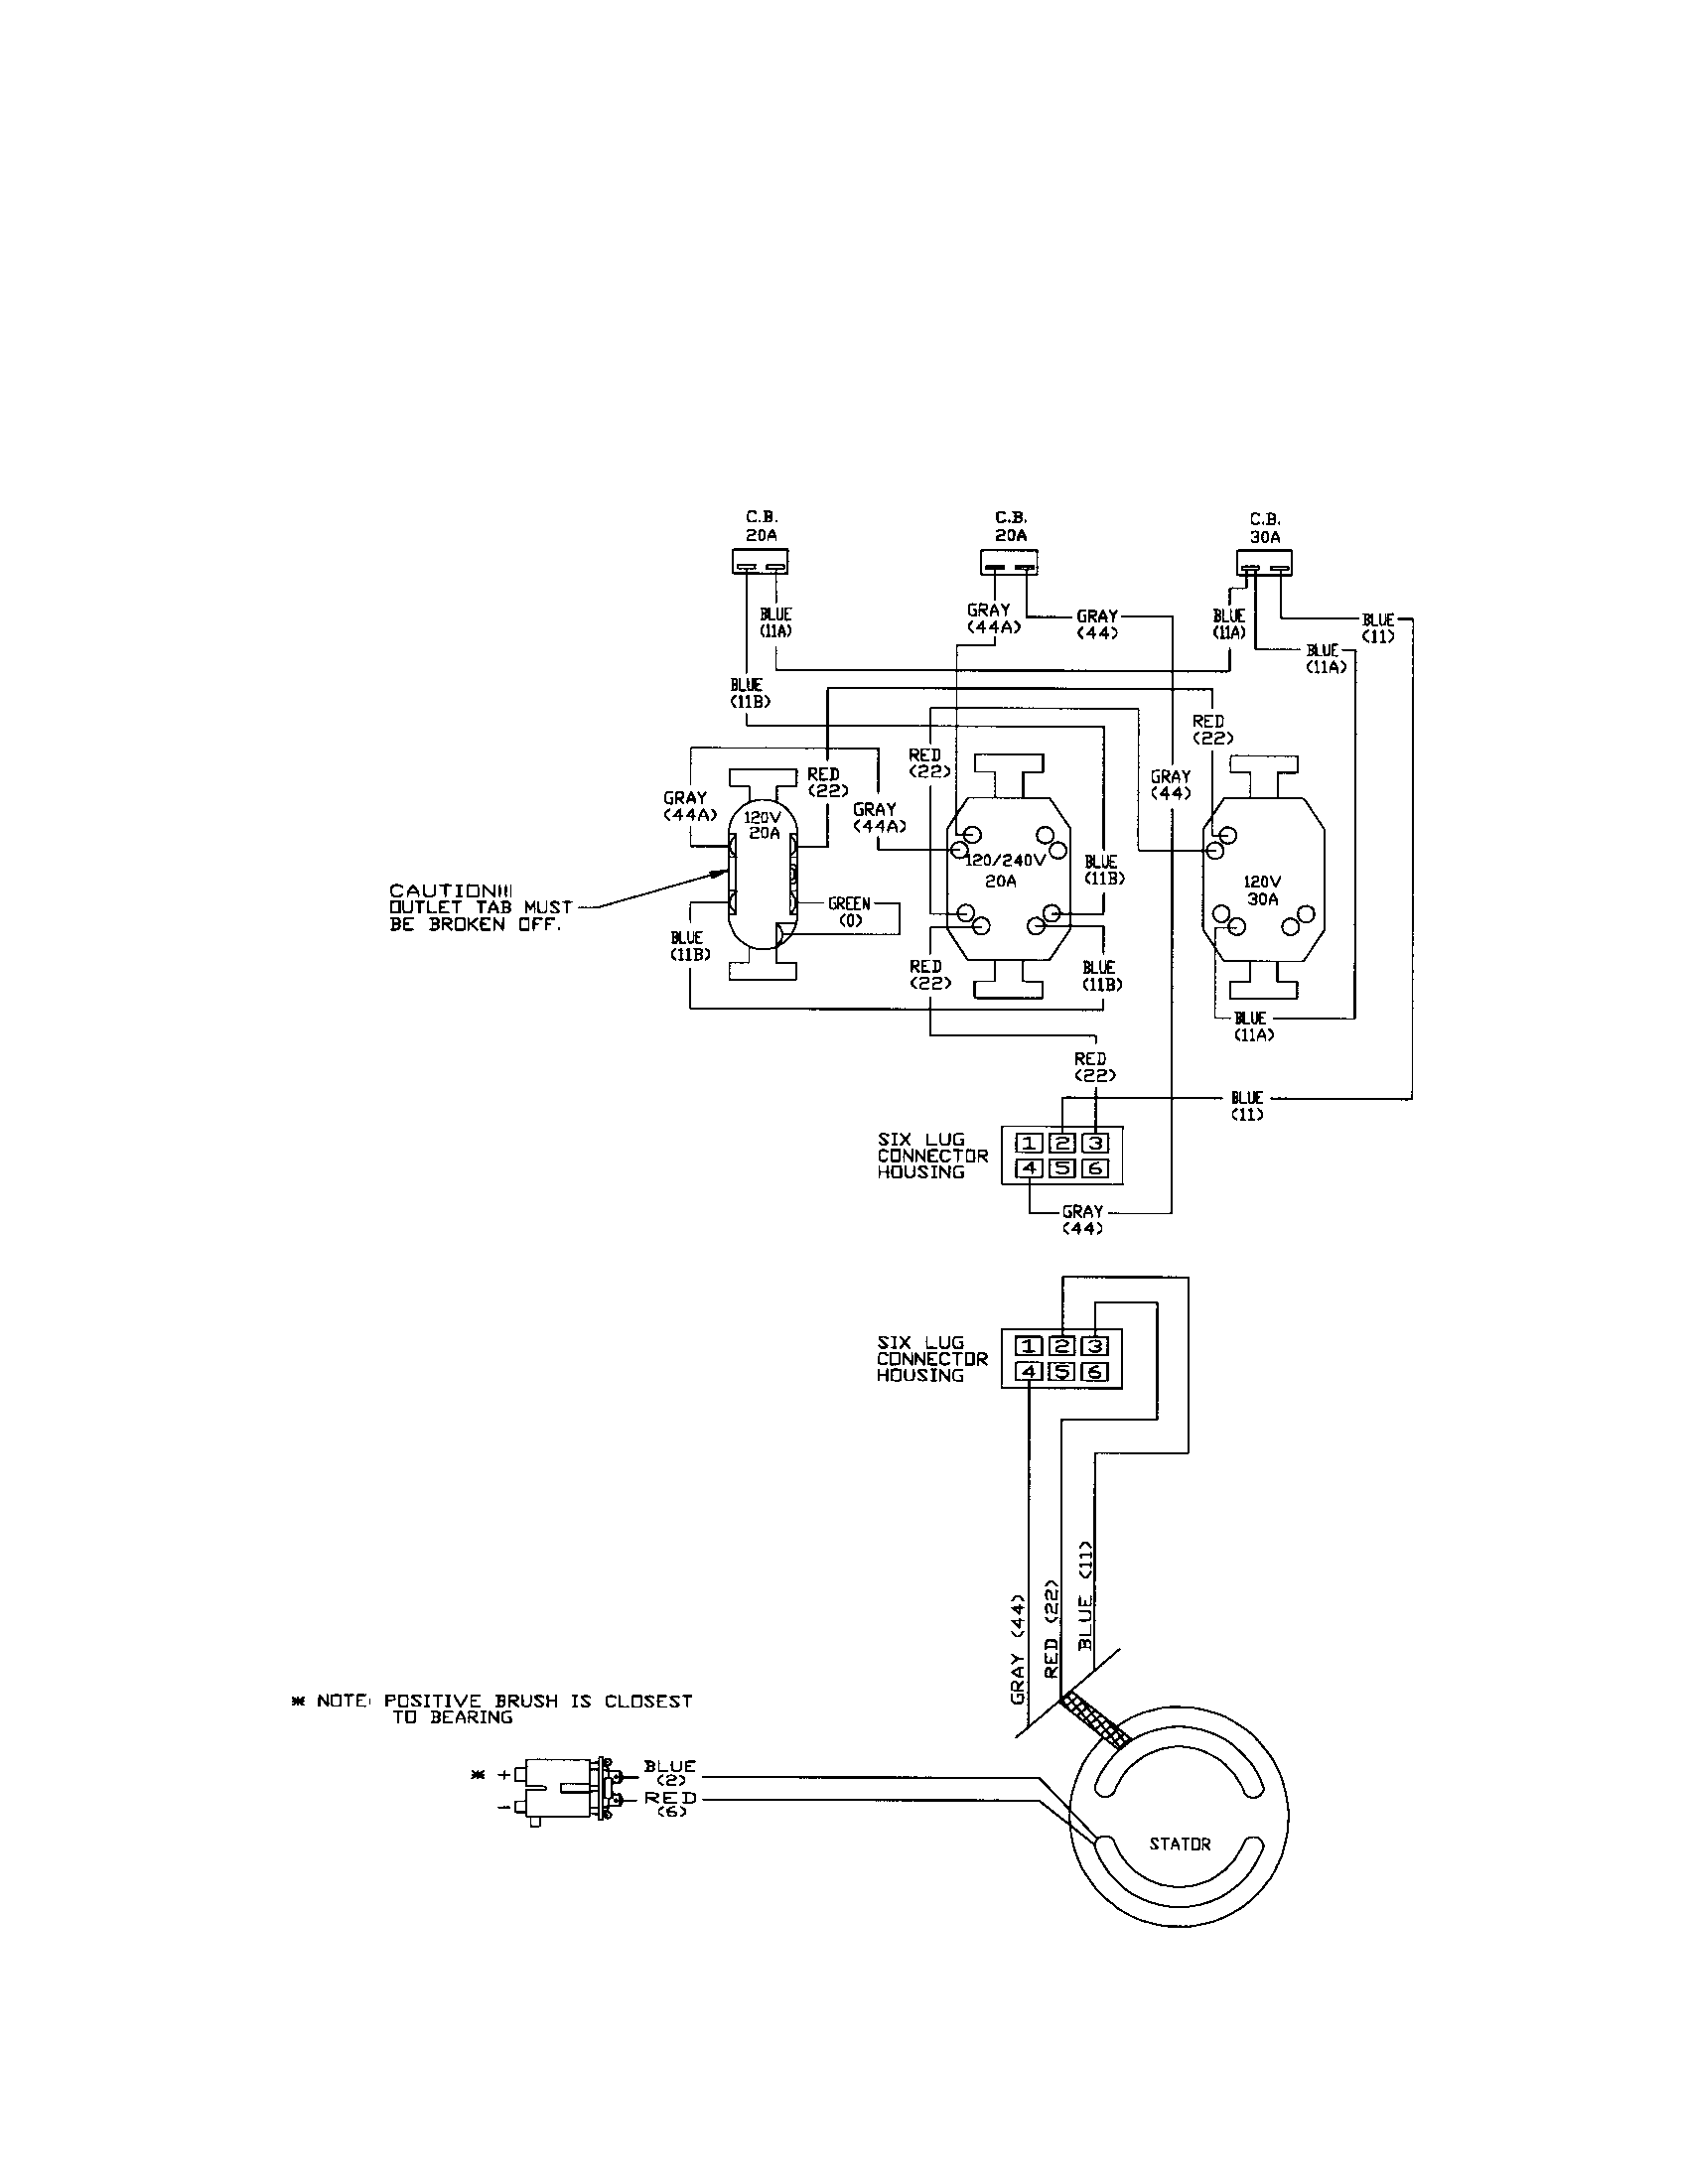 hight resolution of generac 5000 watt generator wiring diagram wiring diagram technic generac 5000 watt generator wiring diagram generac 5000 generator wiring diagram